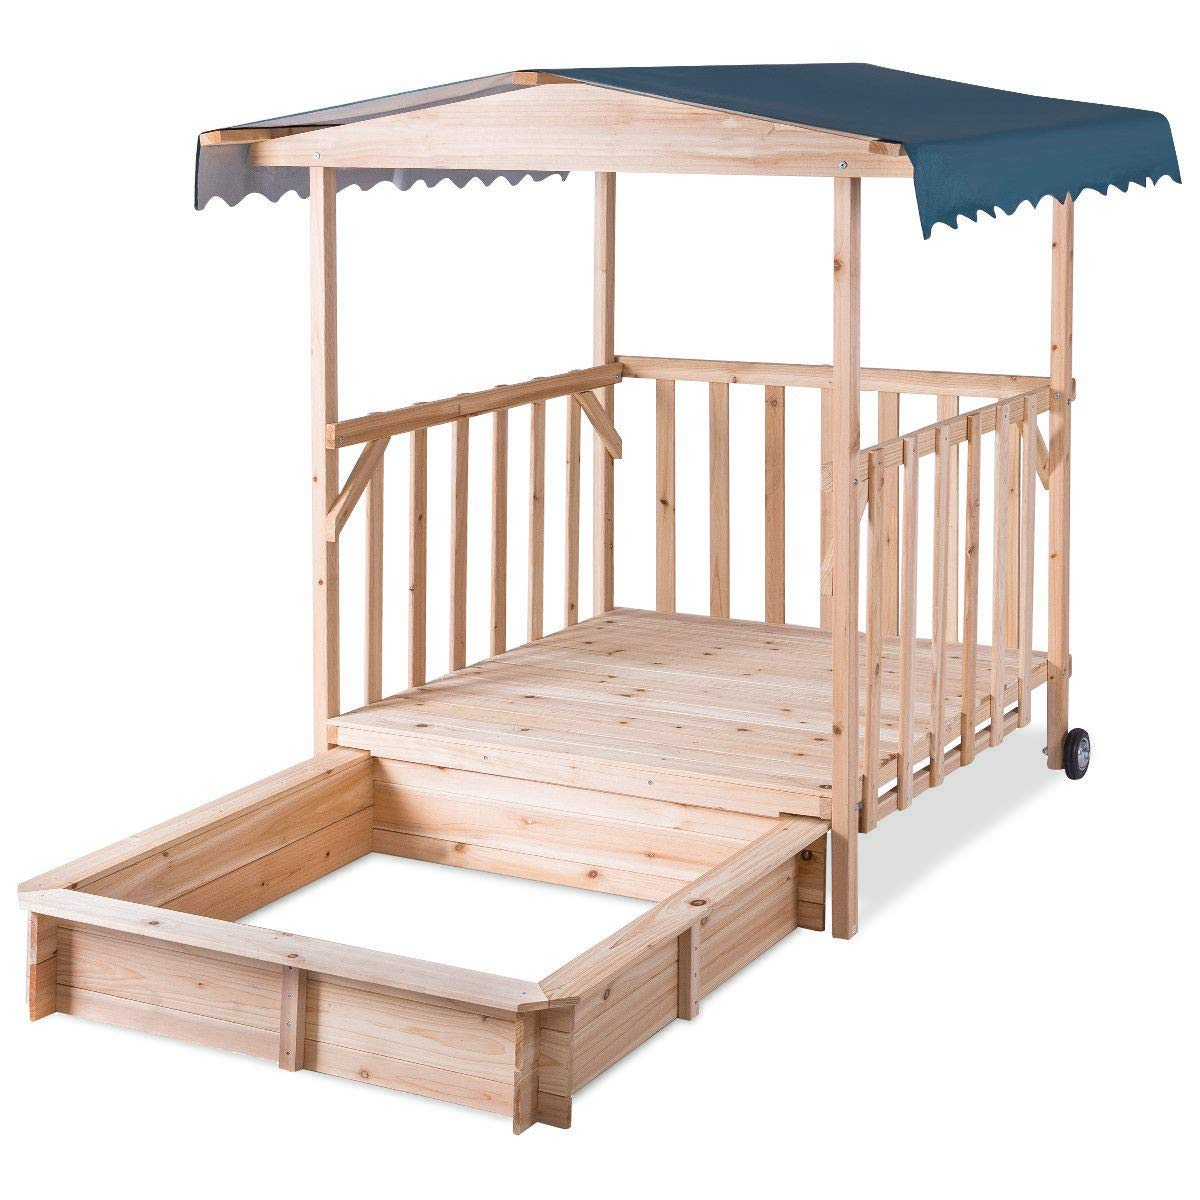 NanaPluz 41'' Wood Kids Outdoor Playhouse Children Retractable Cabana Beach Sandbox w/ Canopy & 4 Swivel Casters with Ebook